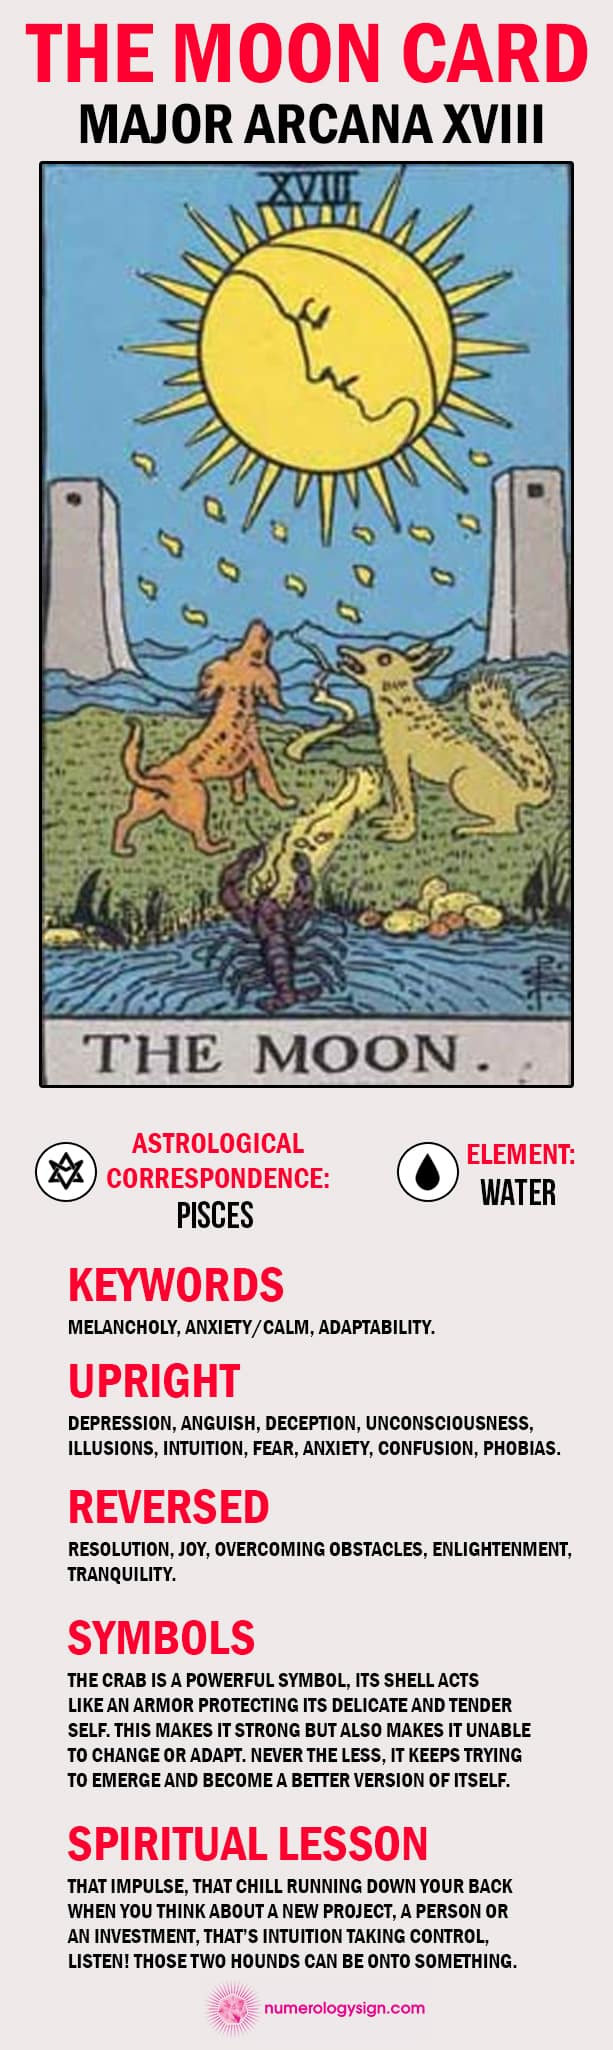 The Moon Tarot Card Meaning Infographic